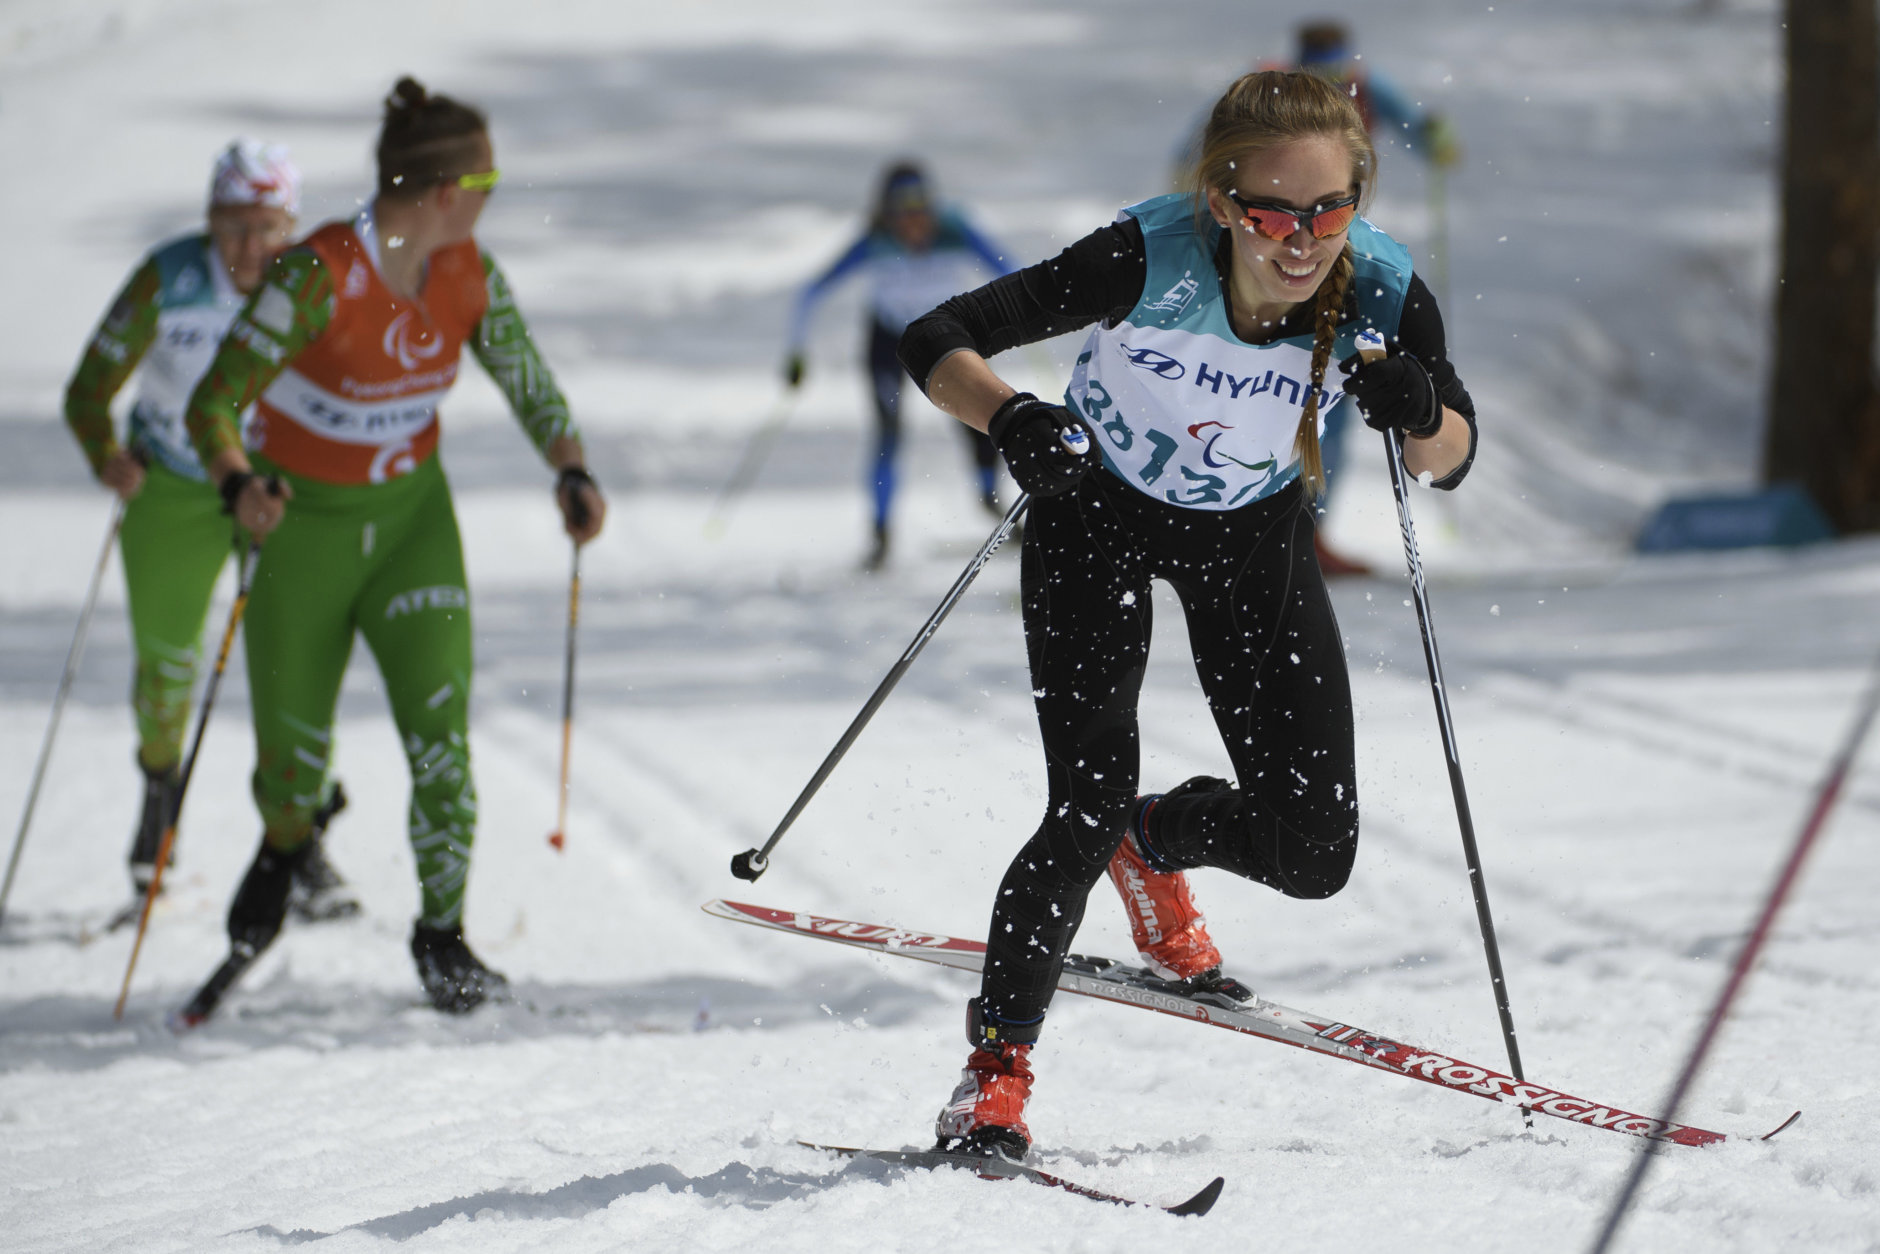 Mikhalina Lysova of Neutral Paralympic Athlete competes during the Cross Country Skiing Women's Visually Impaired 7,5km Classic at the Alpensia Biathlon Centre in Pyeongchang, South Korea at the 2018 Winter Paralympics Saturday, March 17, 2018. (Thomas Lovelock/OIS/IOC via AP)